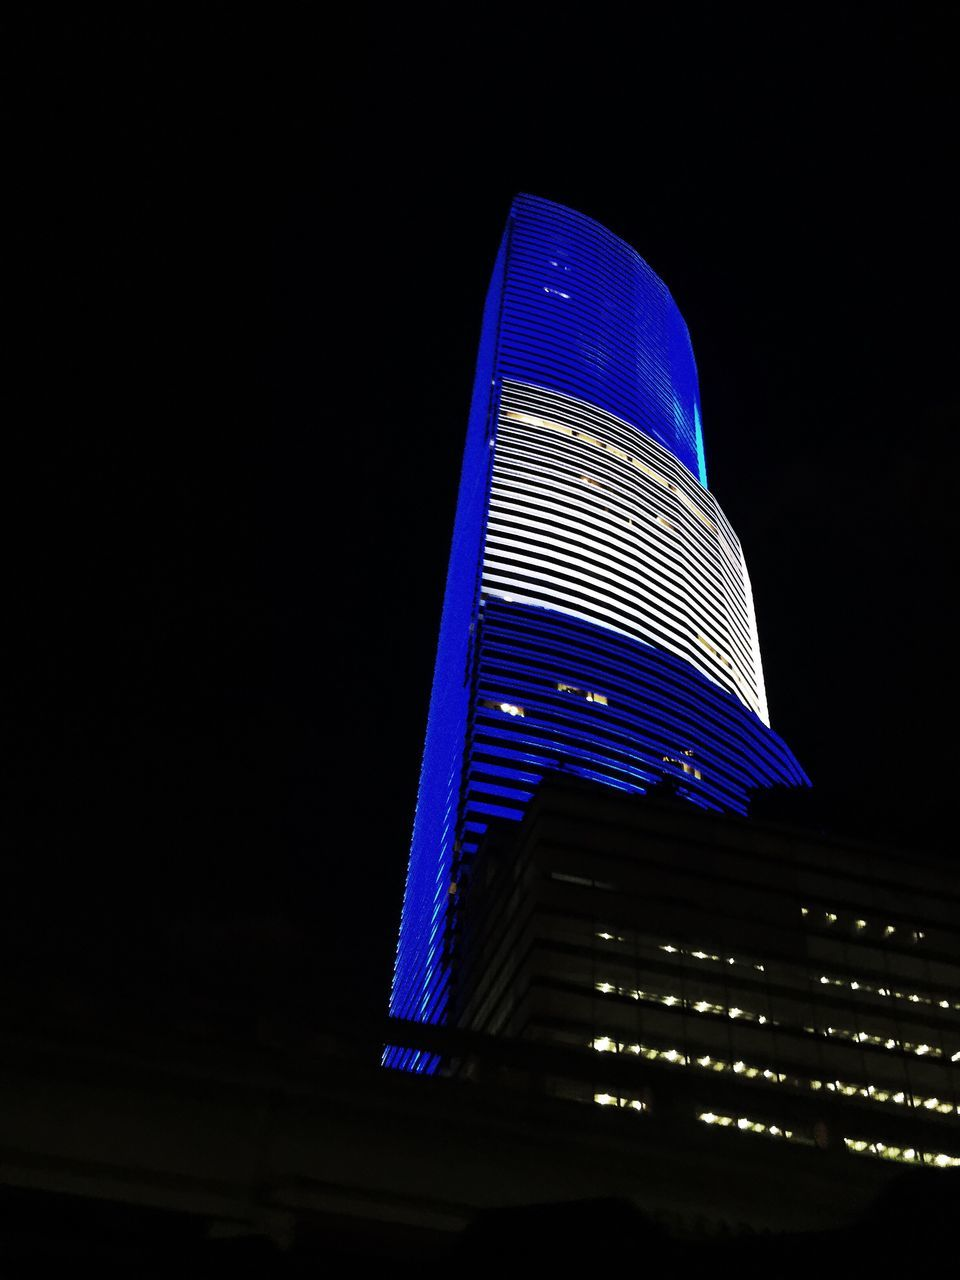 night, modern, illuminated, architecture, low angle view, building exterior, built structure, skyscraper, city, outdoors, no people, sky